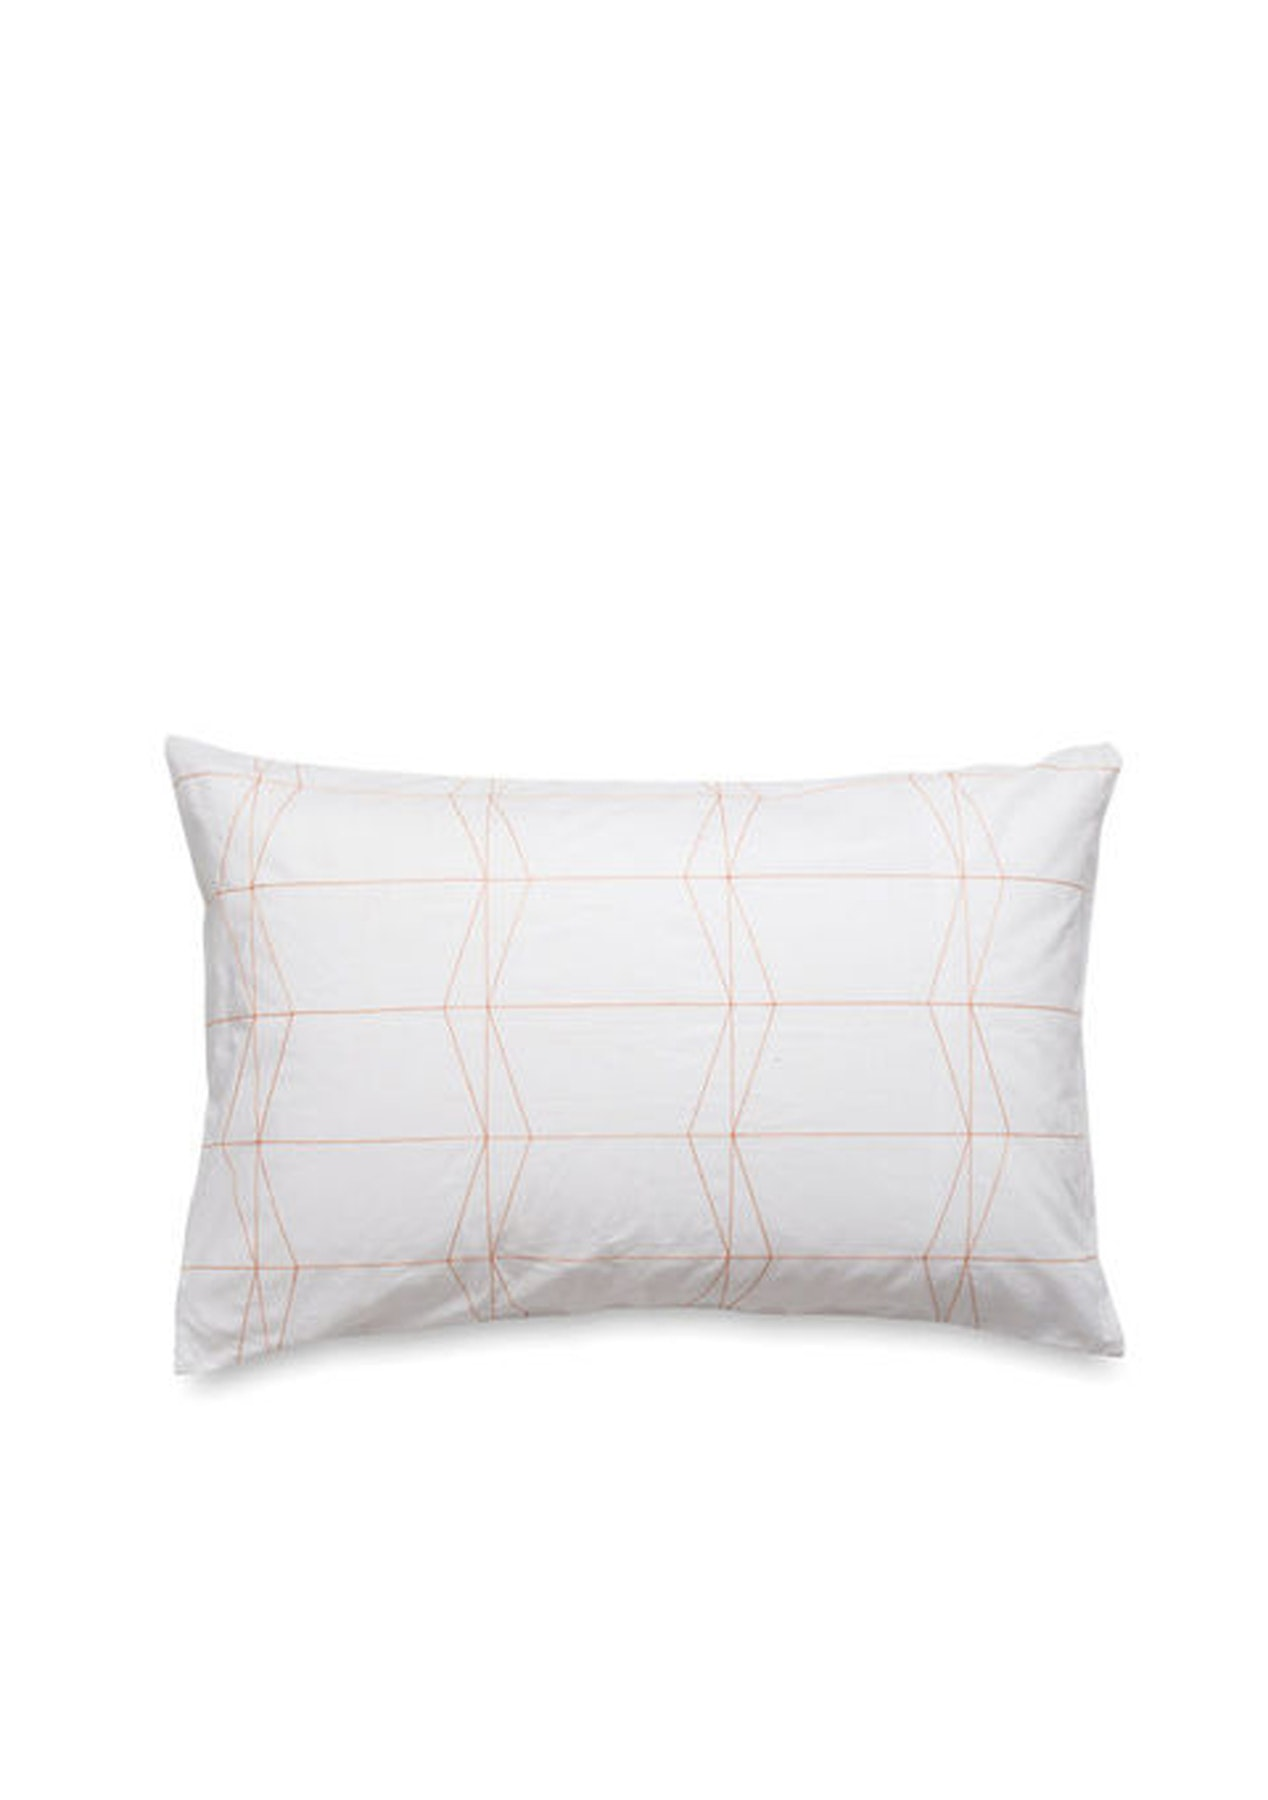 Citta frey embroidered duvet cover white persimmon q for Citta design outlet